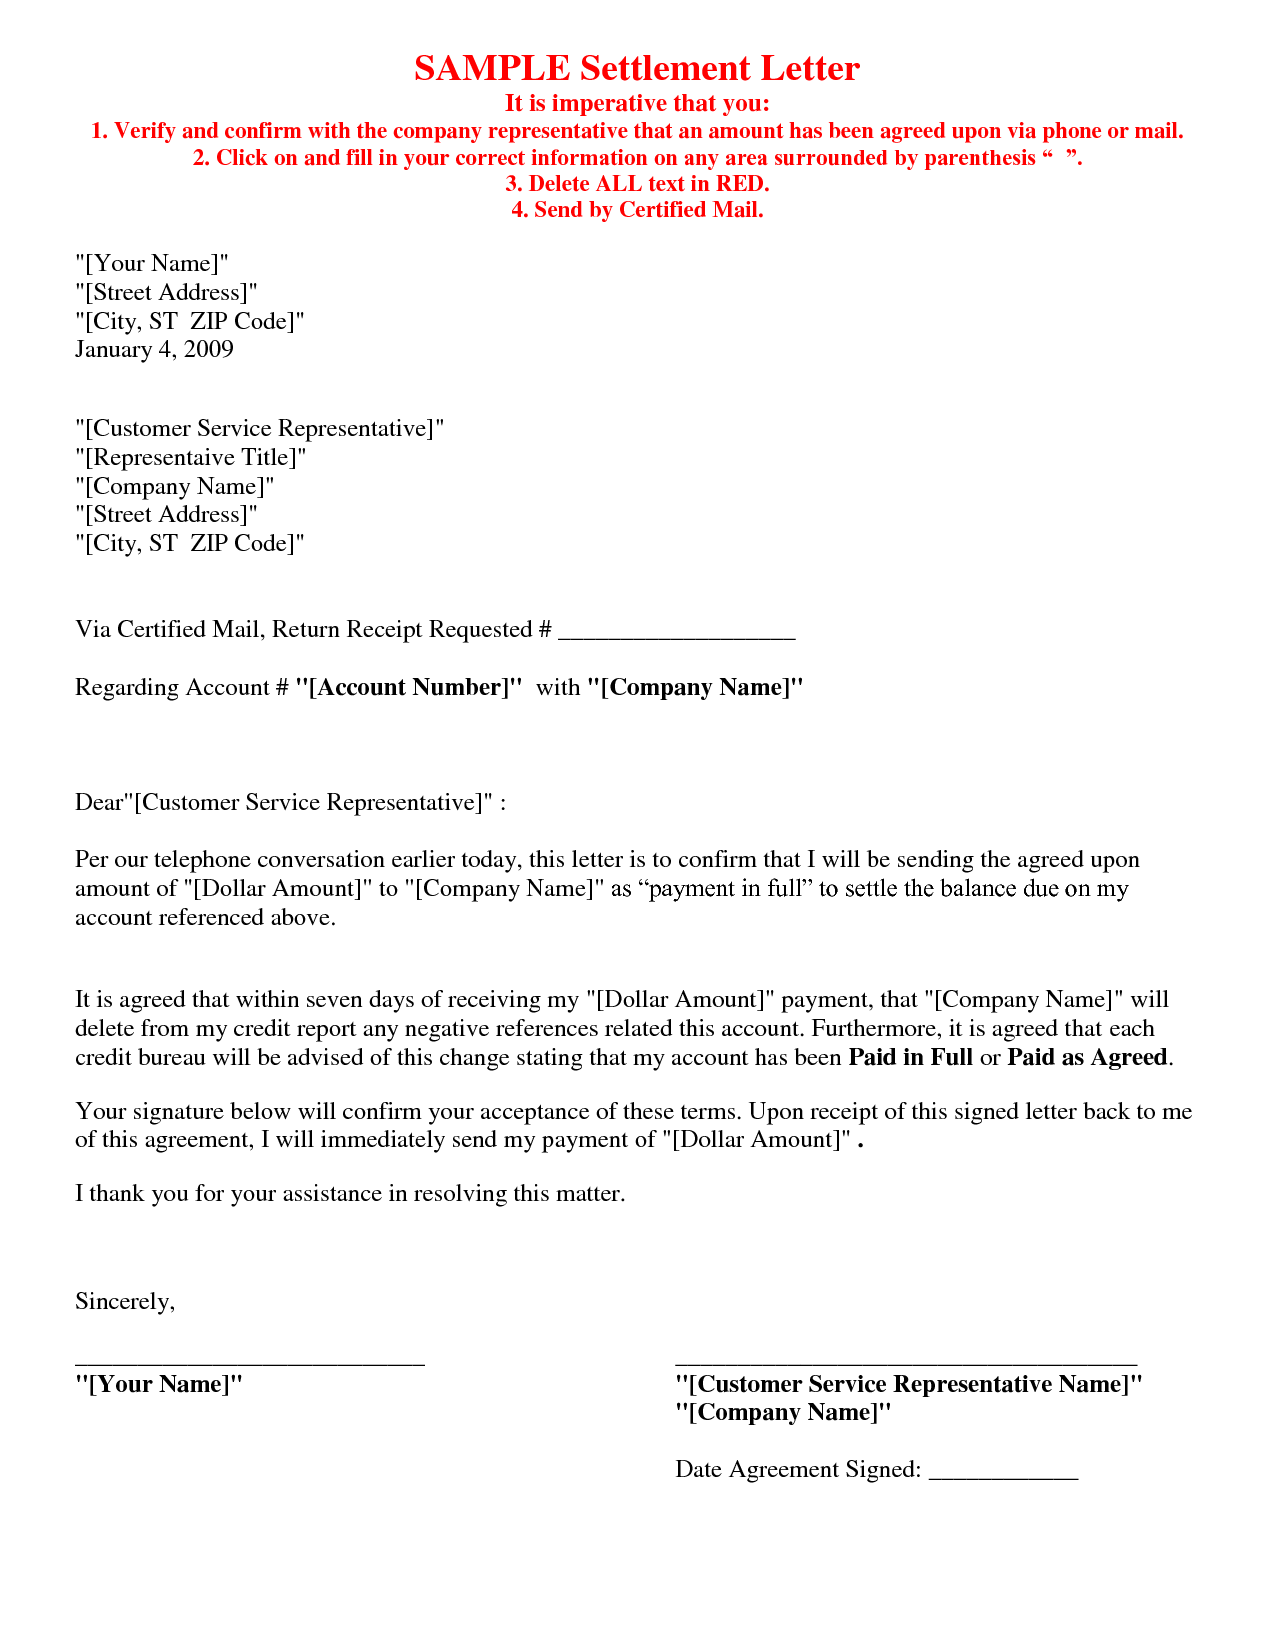 Picture 5 of 17 debt settlement agreement letter sample picture 5 of 17 debt settlement agreement letter sample agreement letter template spiritdancerdesigns